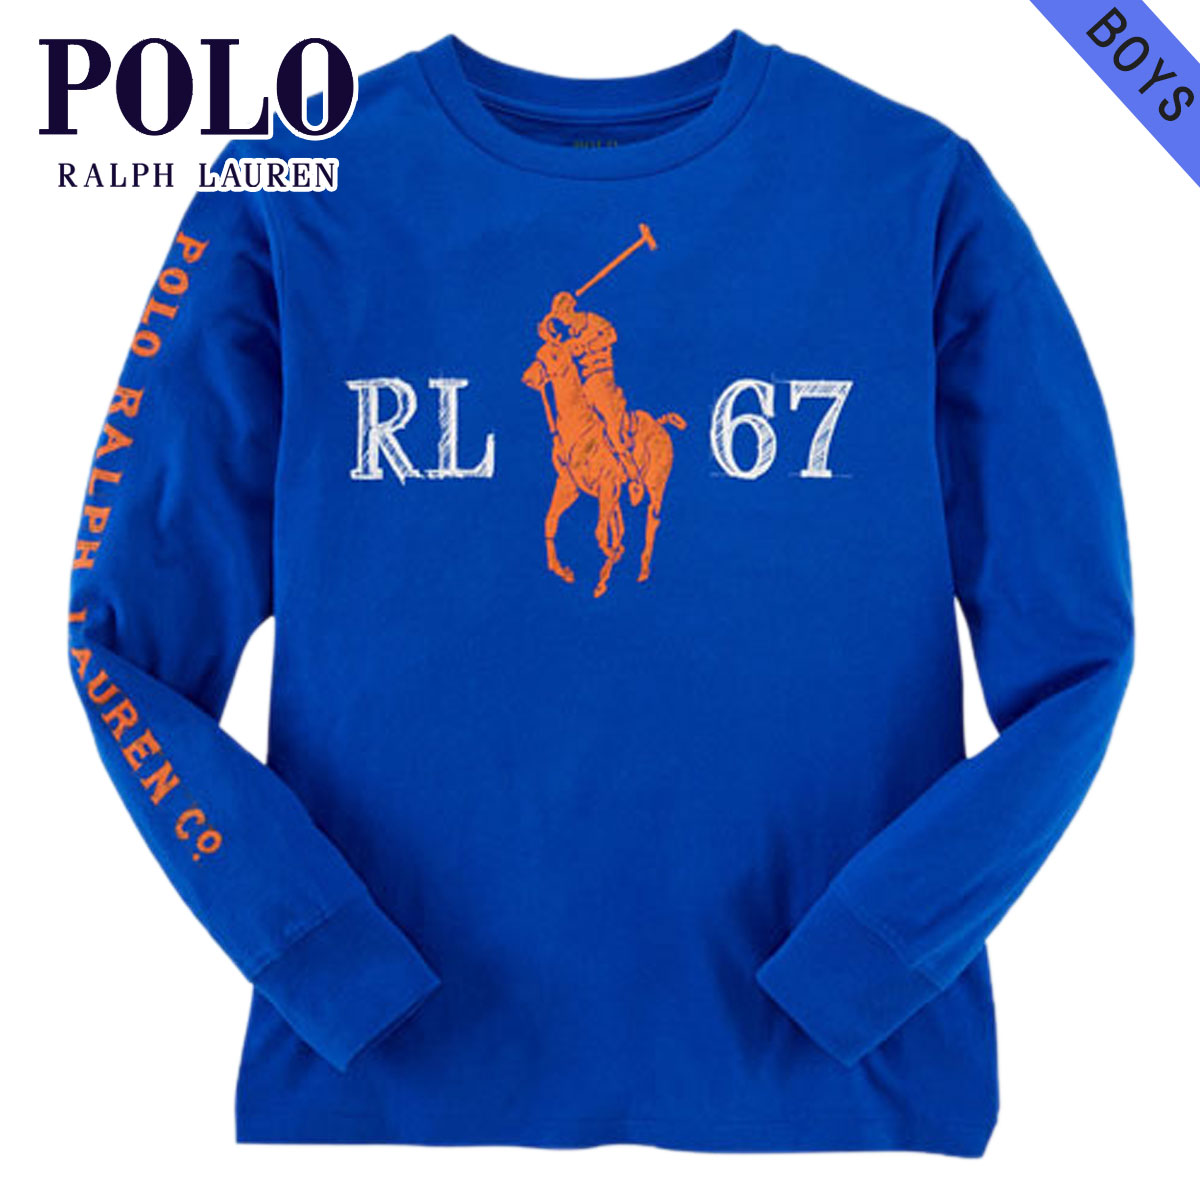 2133dbde8 Rakuten Ichiba shop MIXON: Polo Ralph Lauren kids POLO RALPH LAUREN  CHILDREN regular article children's clothes Boys long sleeves T-shirt  COTTON GRAPHIC TEE ...